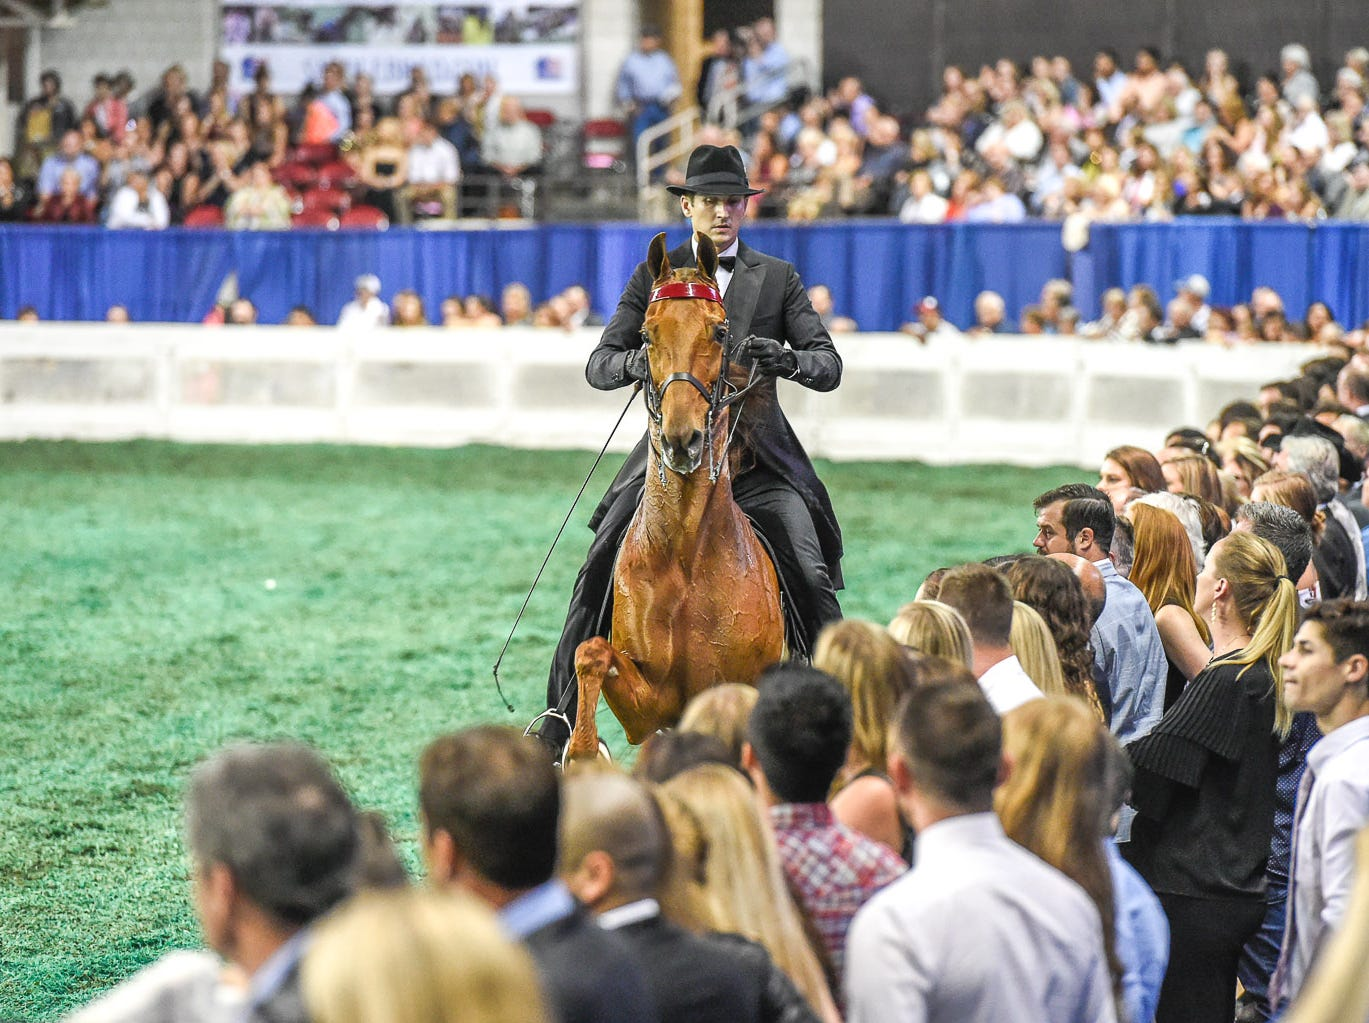 The Daily Lottery on his way to win the 5 gaited World's Grand Championship with trainer Daniel Lockhart